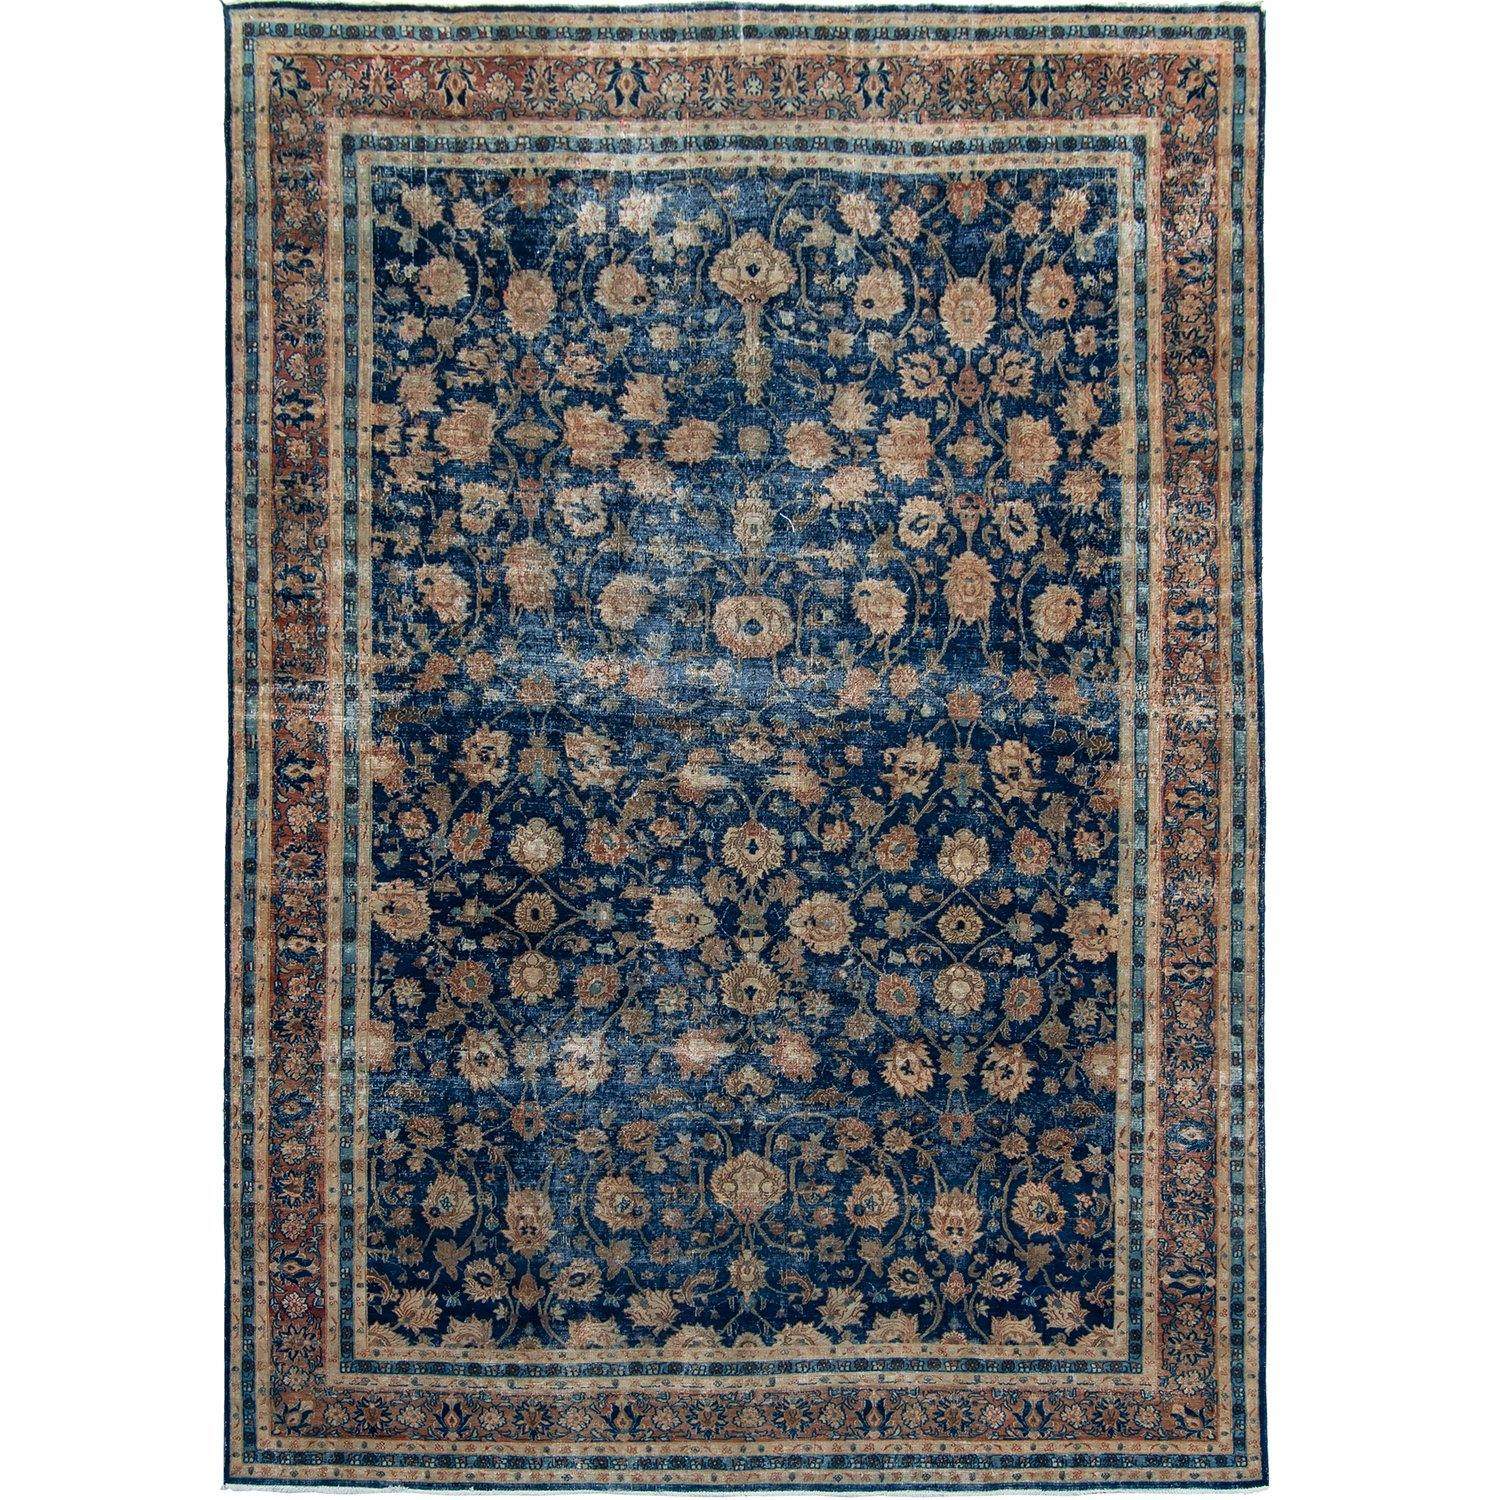 Vintage Persian  Hand-knotted Wool Rug 257cm x 346cm Persian-Rug | House-of-Haghi | NewMarket | Auckland | NZ | Handmade Persian Rugs | Hand Knotted Persian Rugs